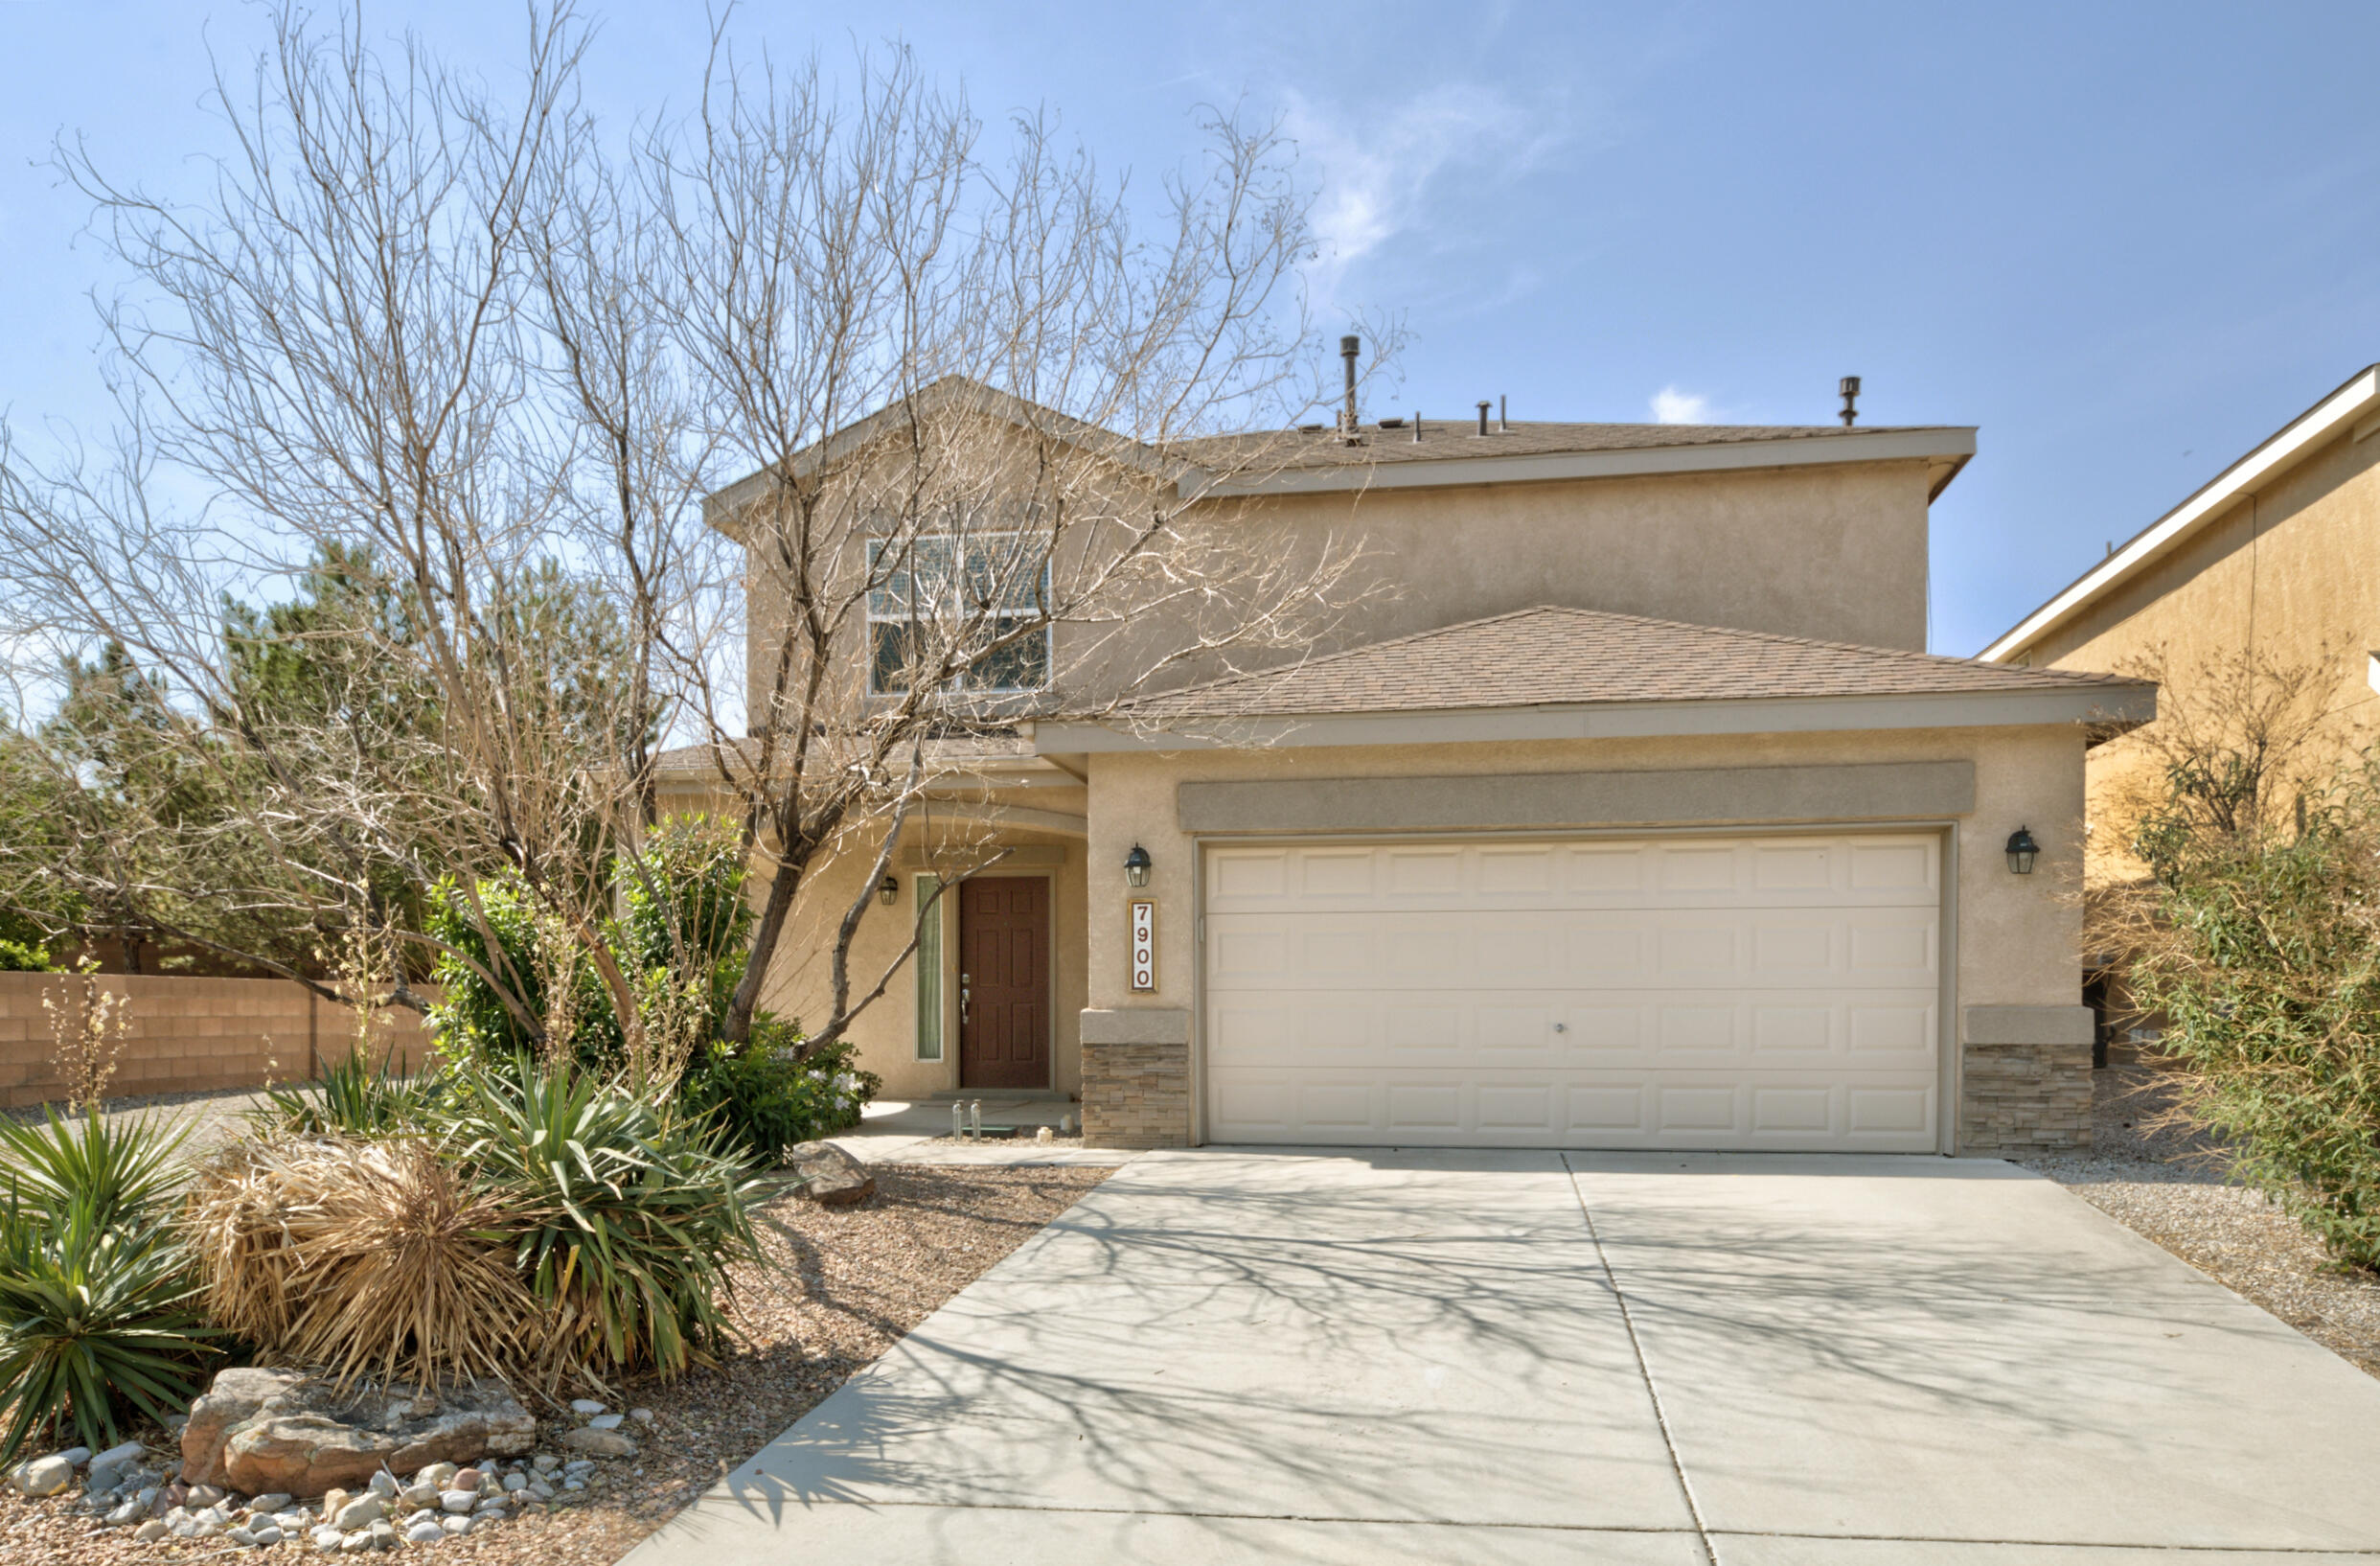 Great 3 bedroom 2 story home in Ventana Ranch. New carpet throughout. Solid surface kitchen counters. Large bedrooms upstairs. Rocked back yard. All appliances convey. Vacant and ready for new owners!